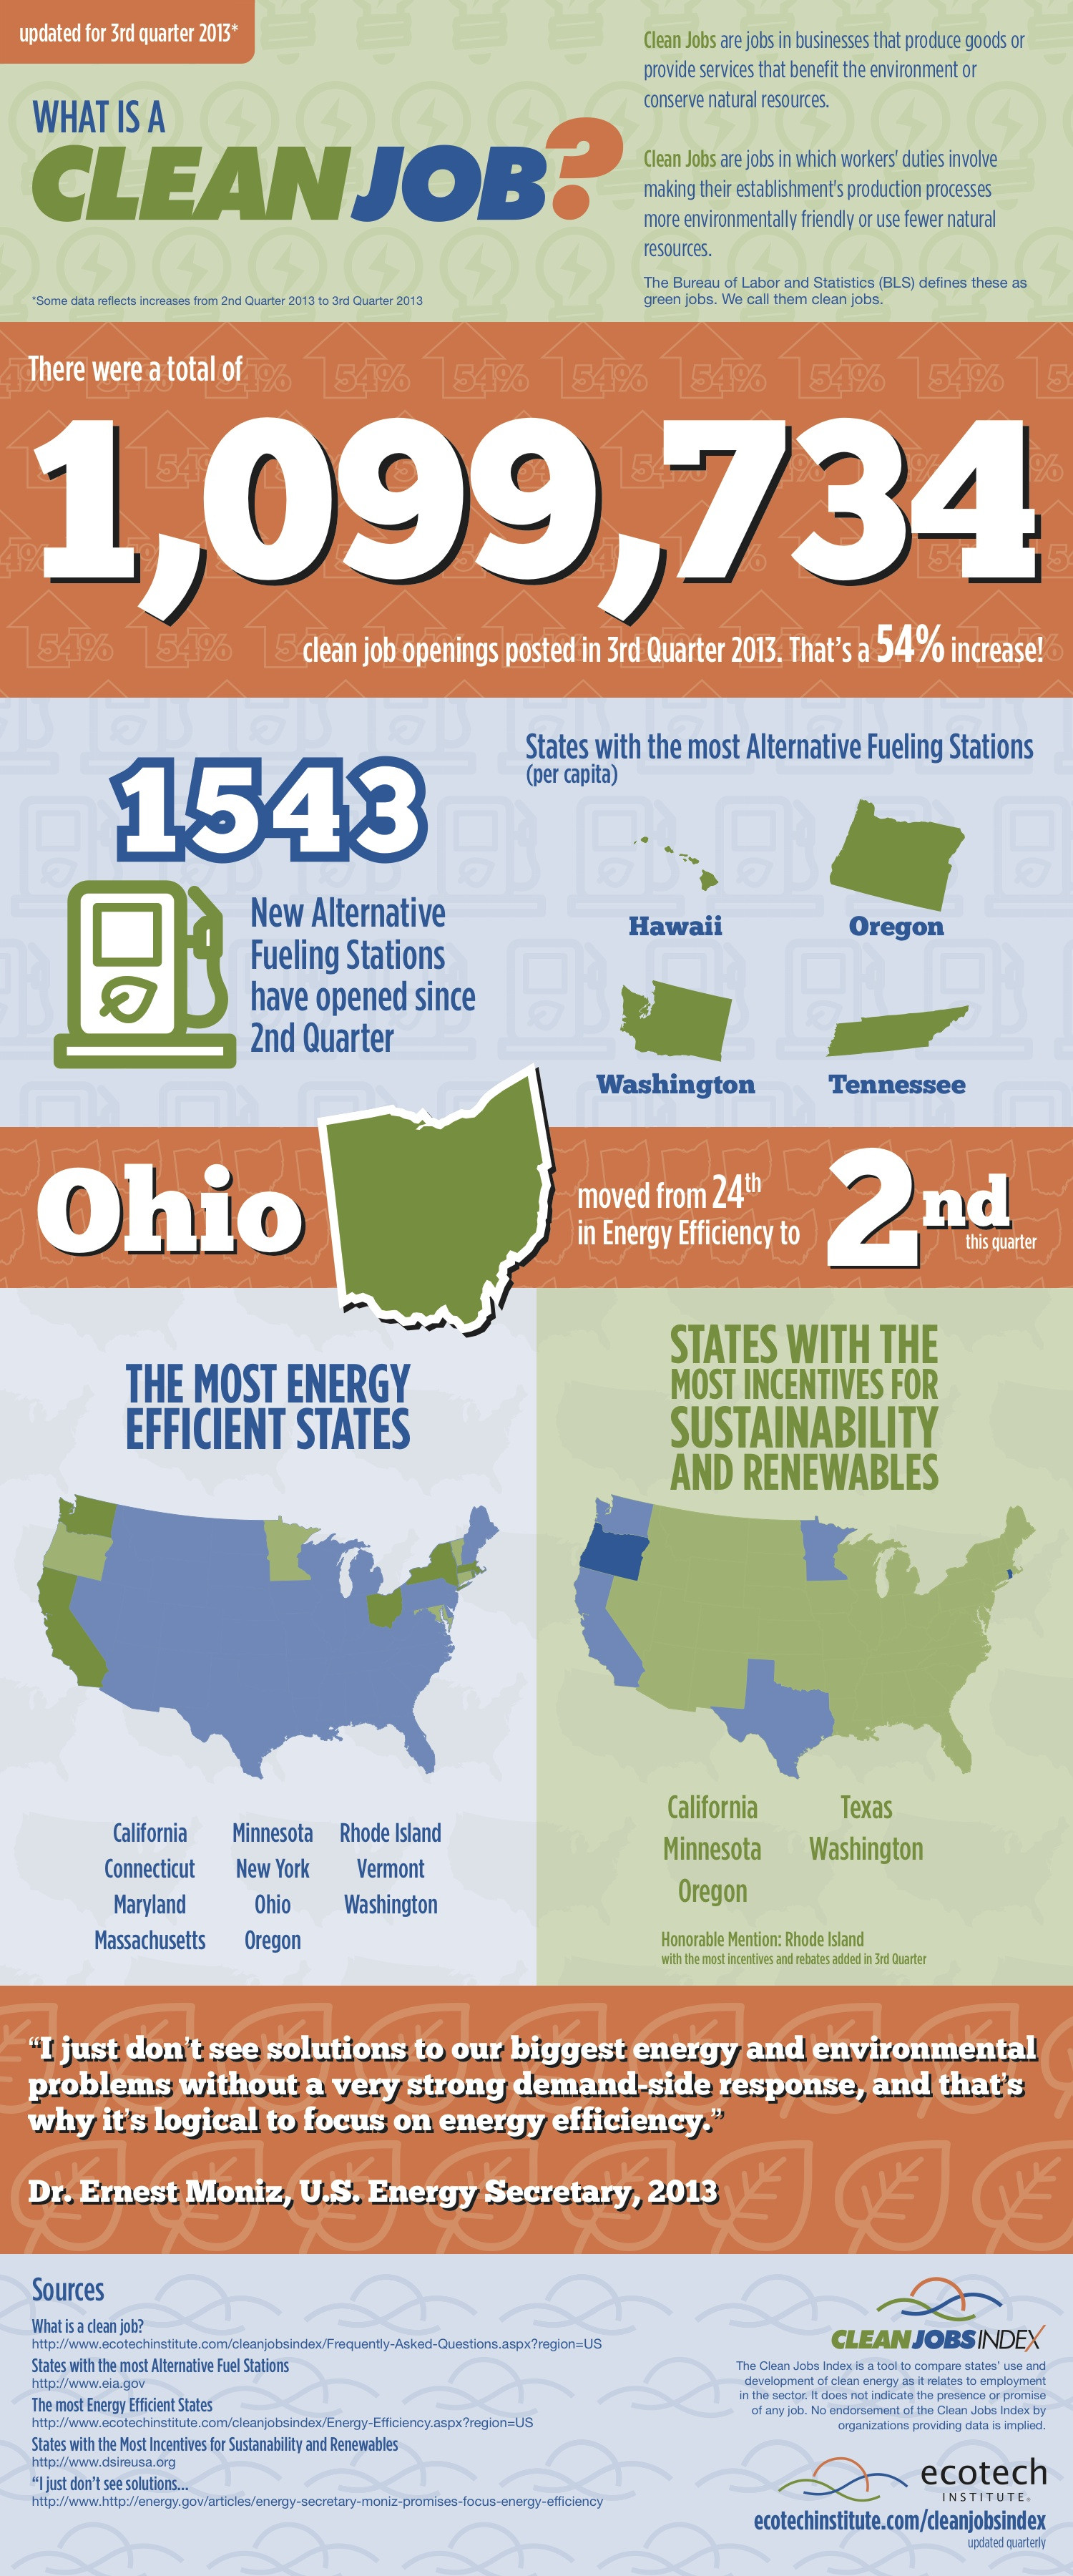 Ecotech Institute's Clean Jobs Index Shows More Than One Million Clean Energy Jobs Exist Infographic